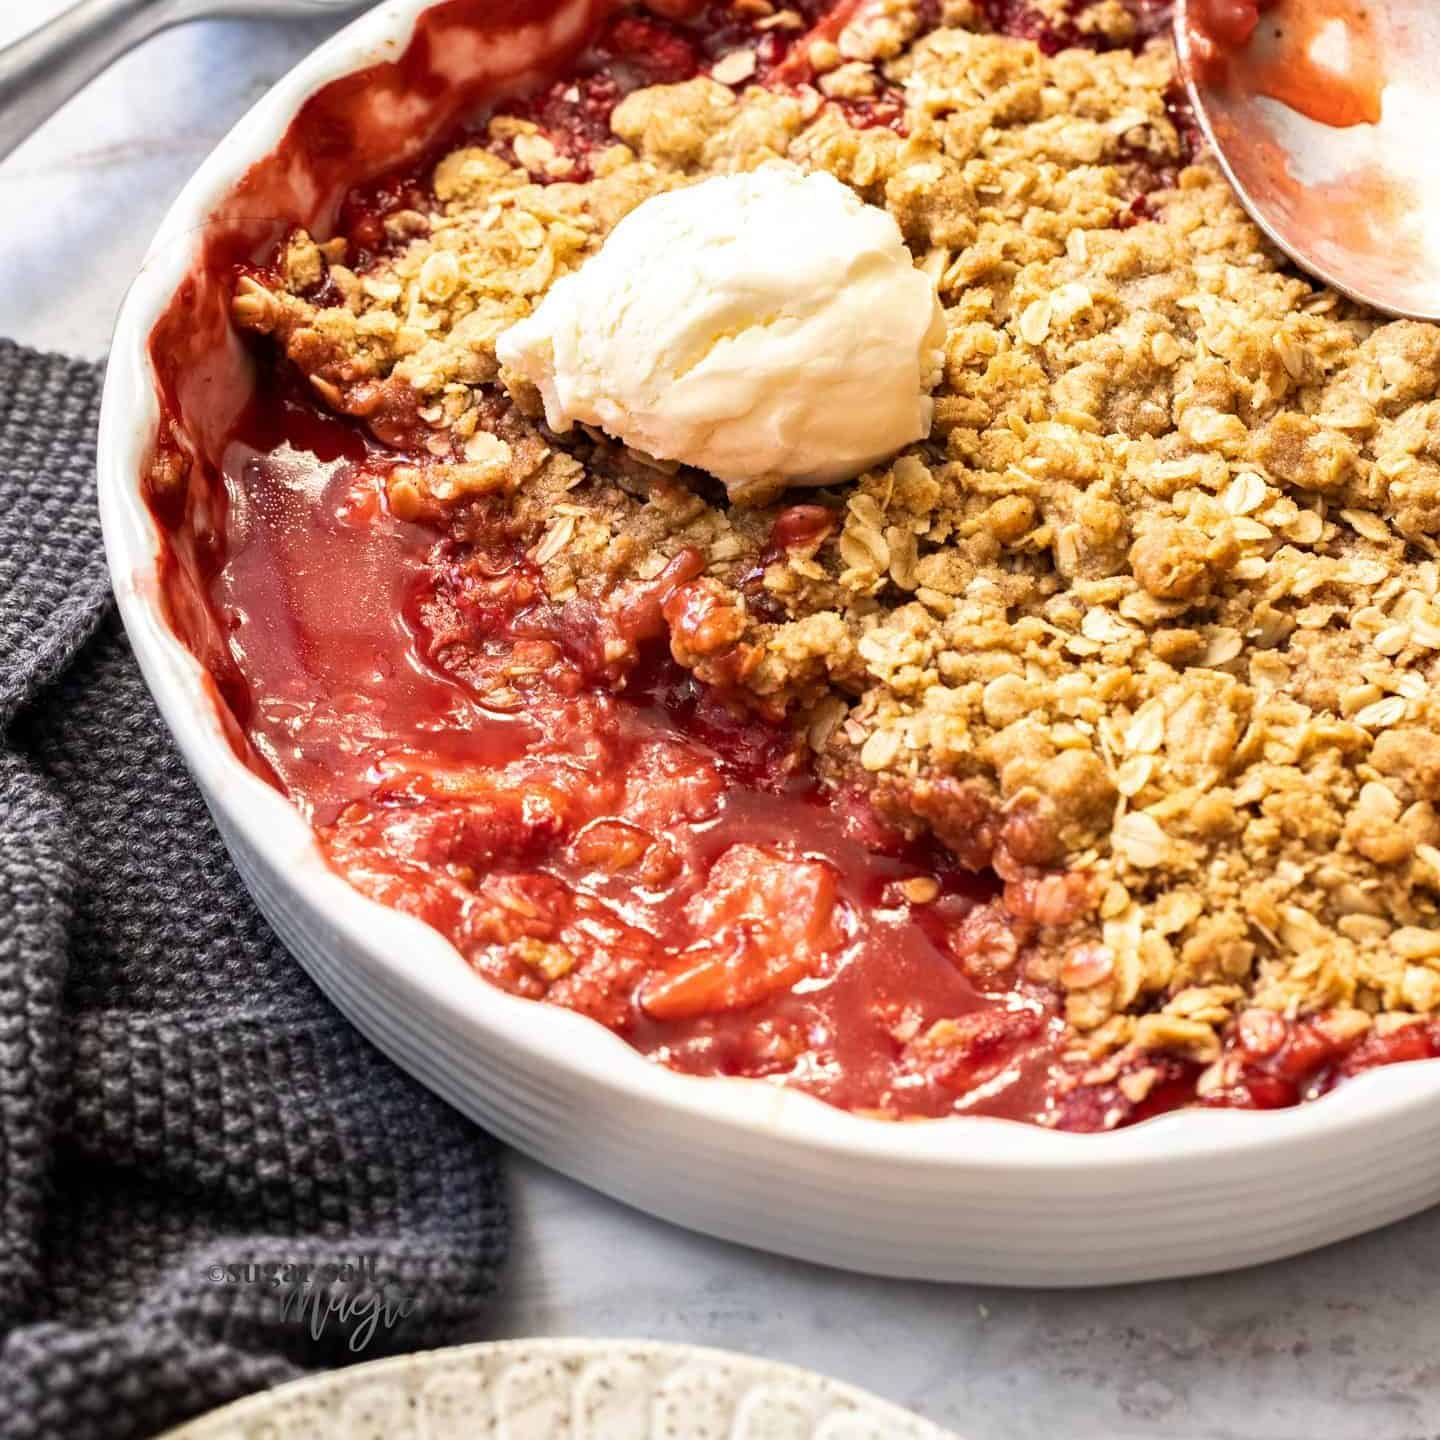 A white pie dish filled with baked strawberry crisp with a dollop of ice cream on top.